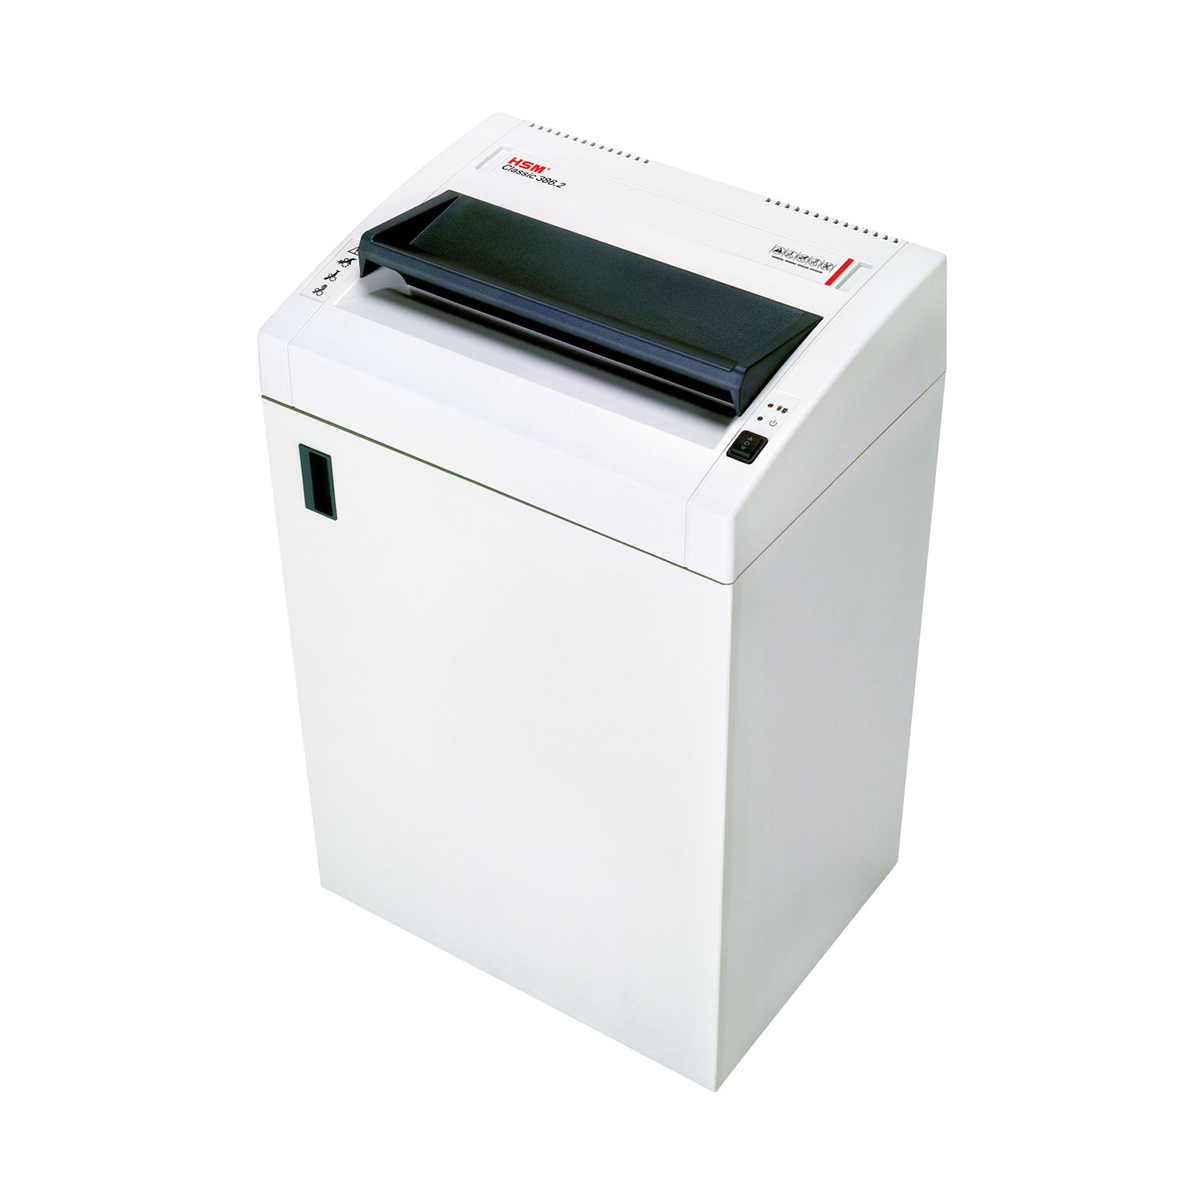 HSM 386.2C 1.9mm Office Cross Cut Shredder